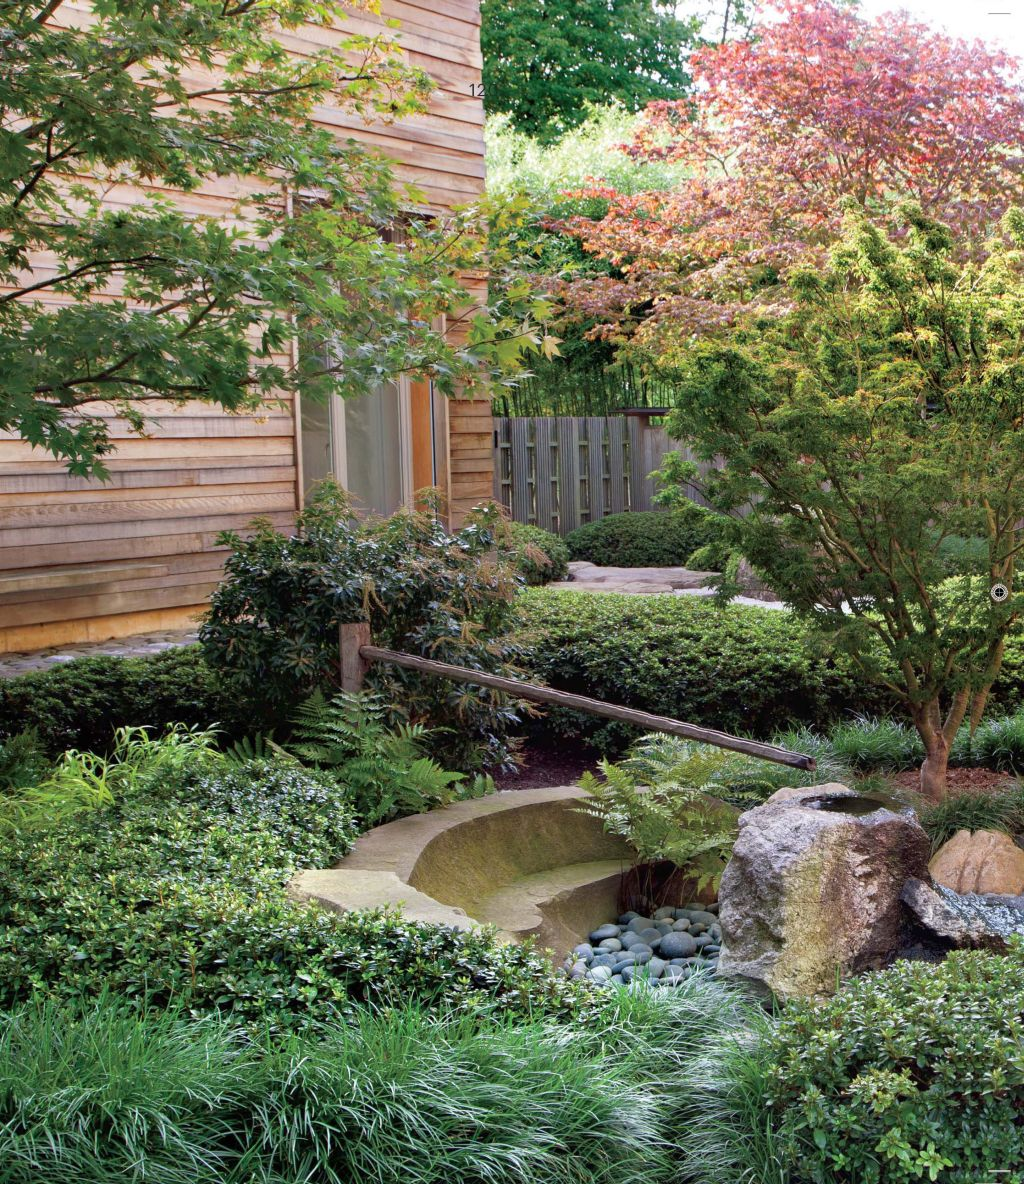 Home Garden Design Ideas Japanese Garden Design Ideas: Beautiful Japanese Garden Designs For Small Spaces